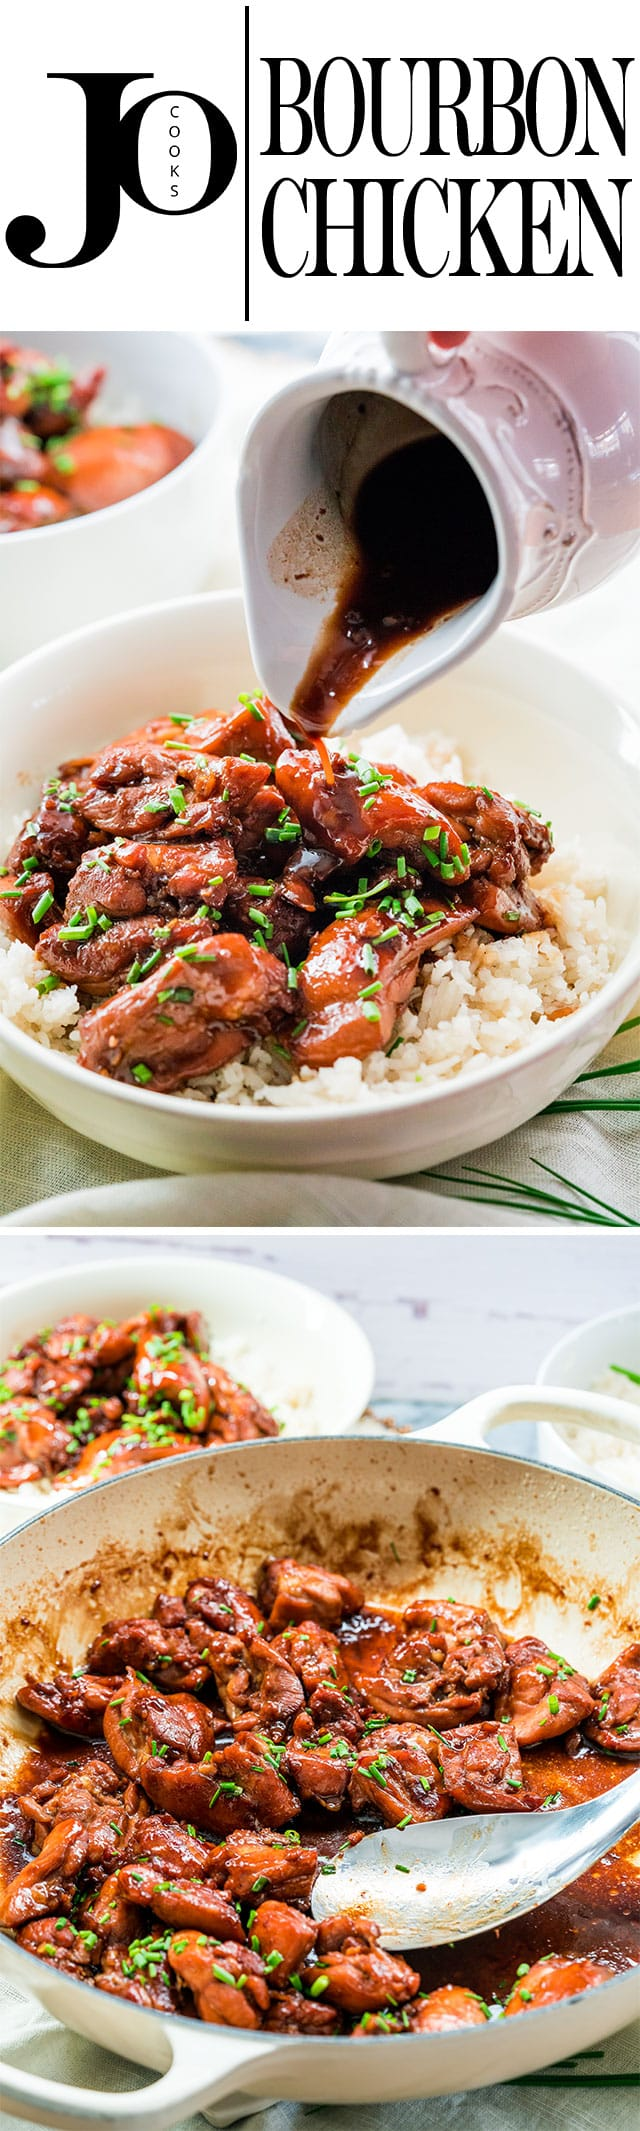 This Bourbon Chicken is a flavorful chicken dish where the chicken is marinated in a bourbon and soy sauce marinade. Served over rice, this dish is easy and delicious! www.jocooks.com #bourbonchicken